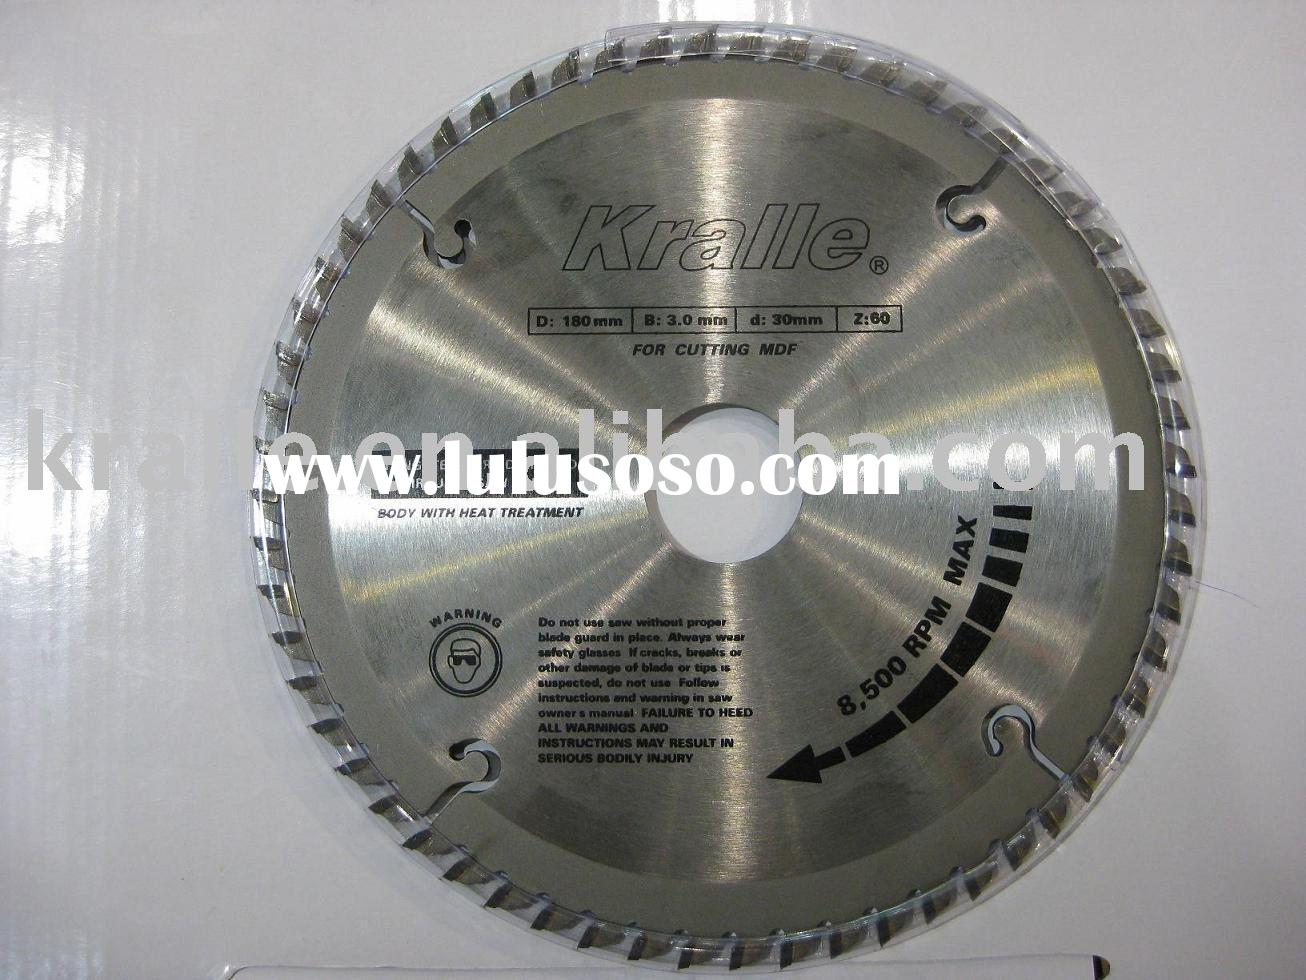 Sell T.C.T Saw Blade For Cutting Plywood,saw blade,tool parts,jig saw blade